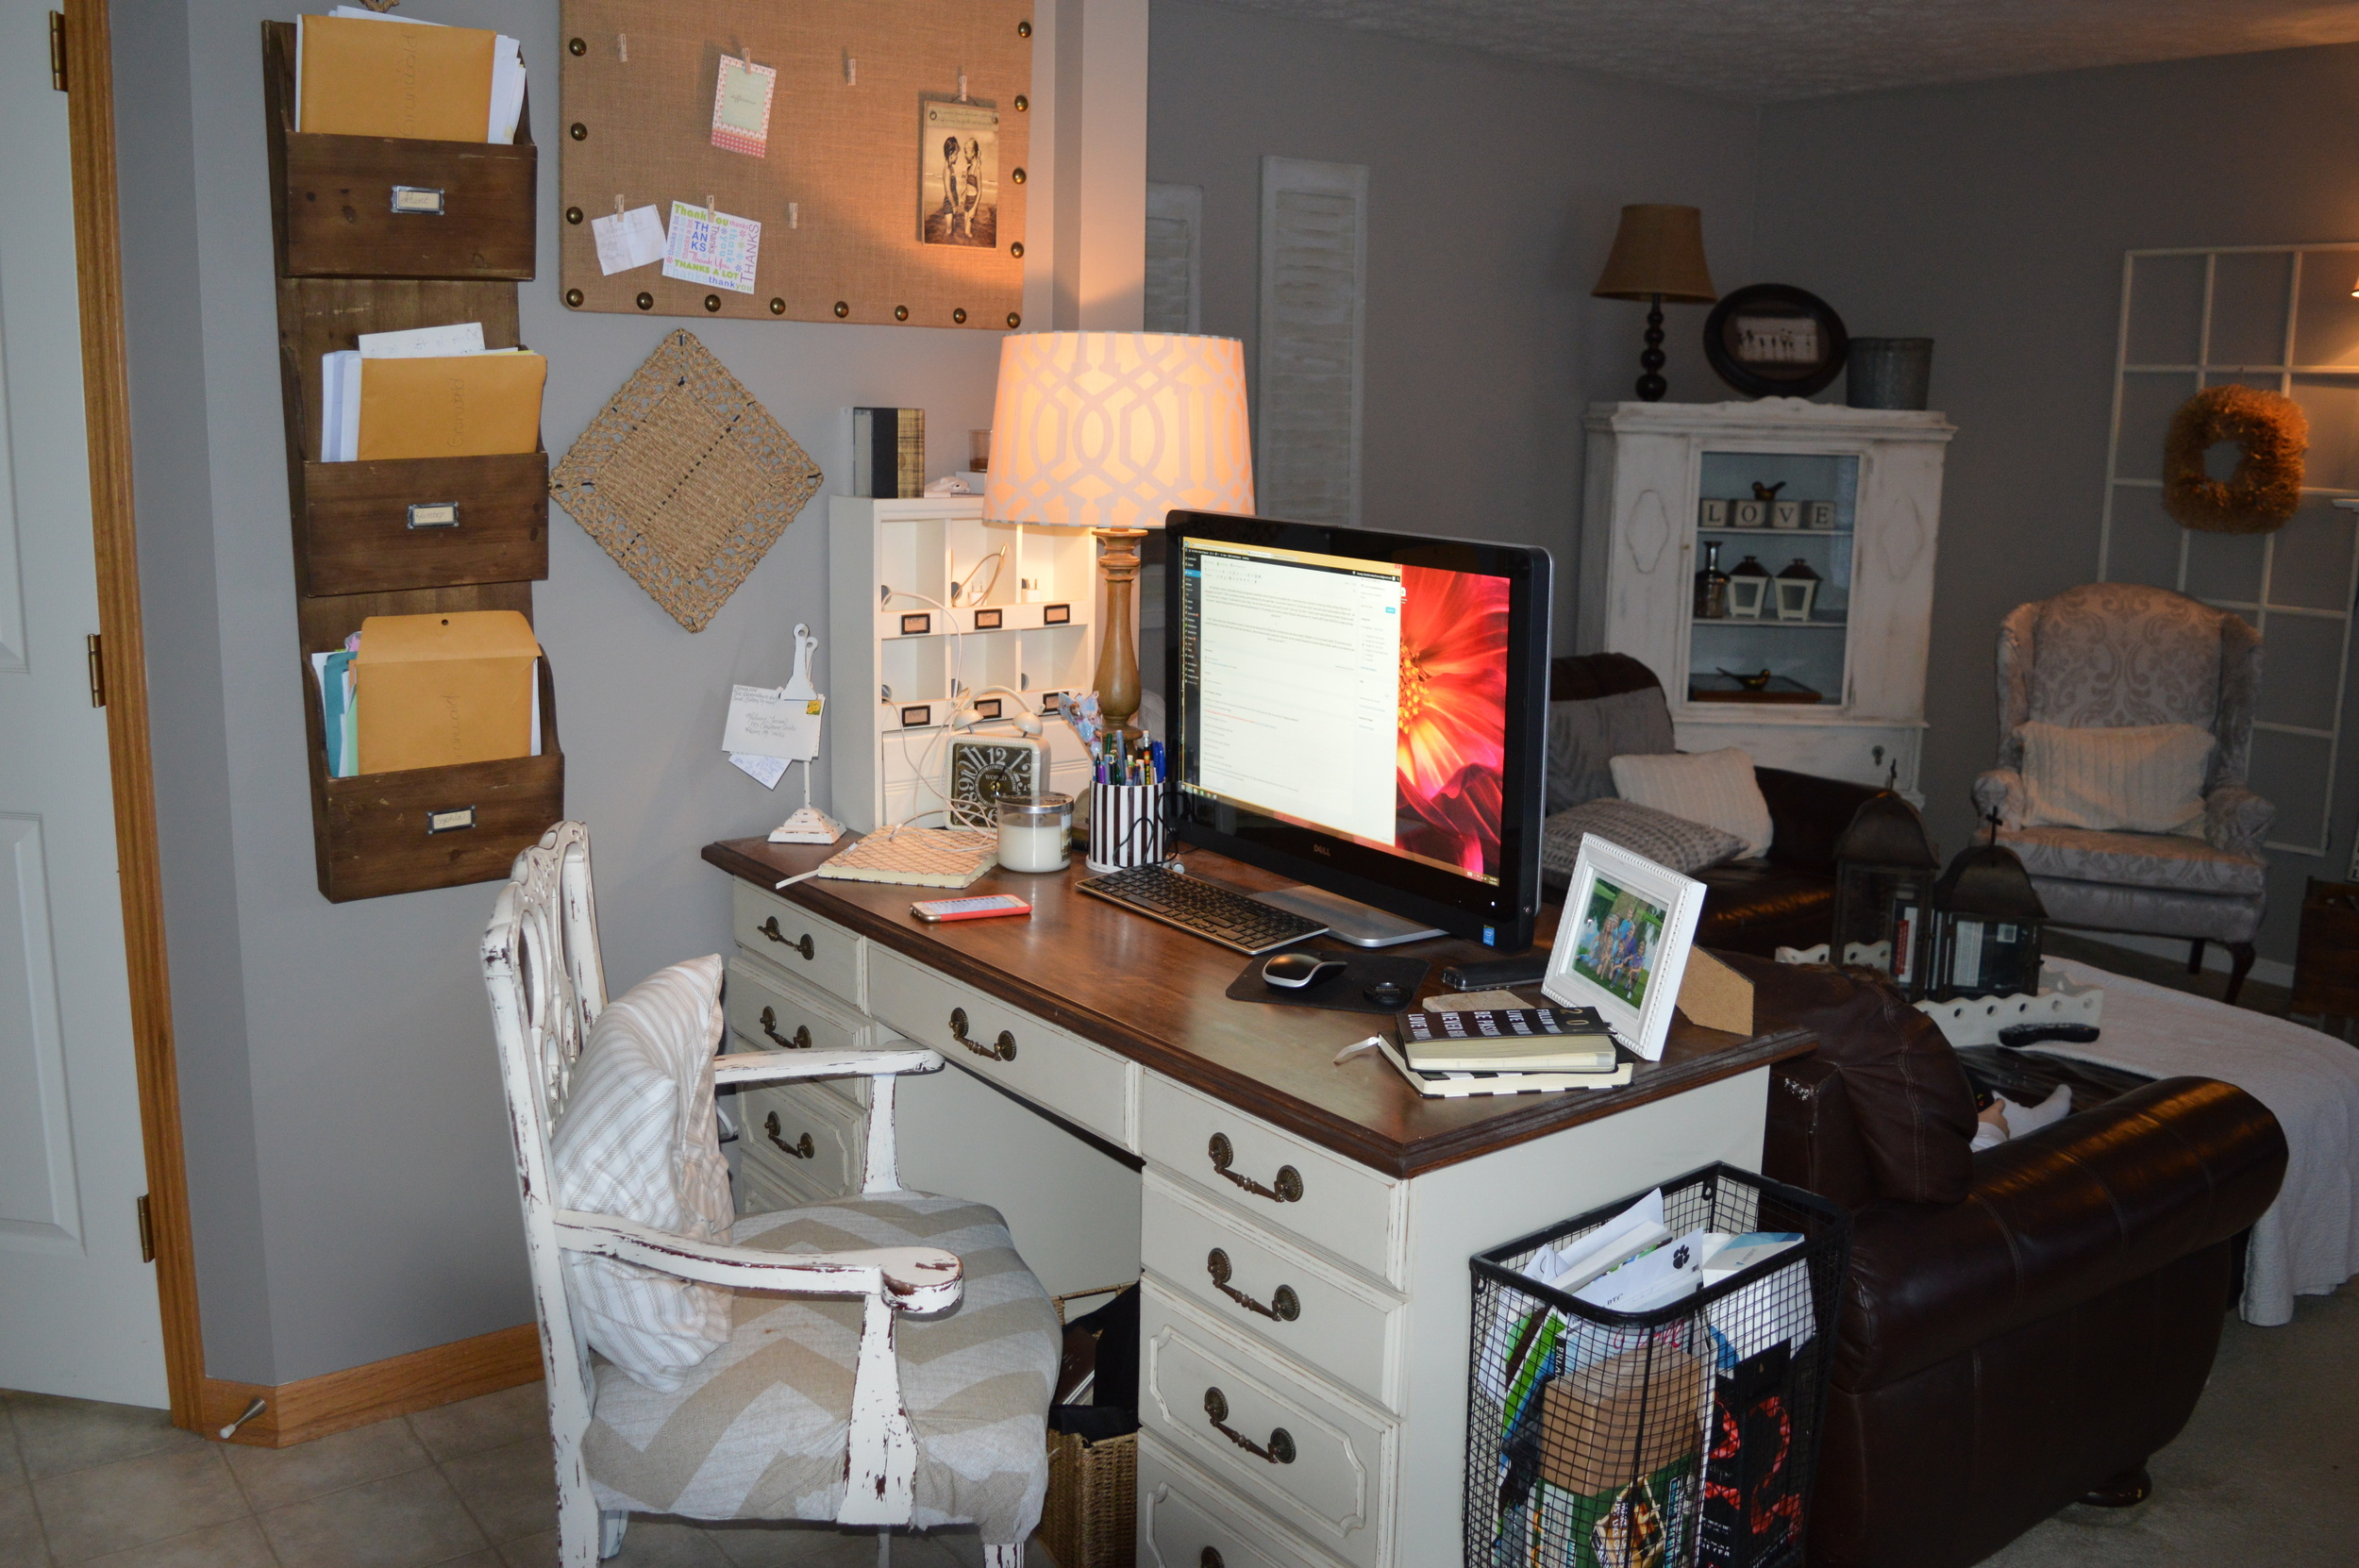 This is our office...in what should be the breakfast nook.  The overhead light is off center and this is a high traffic area for us, so I stuck a desk here and TA DA!  Office!  It's never organized and that basket on the end is forever overflowing with weird junk, it's my visible junk drawer!